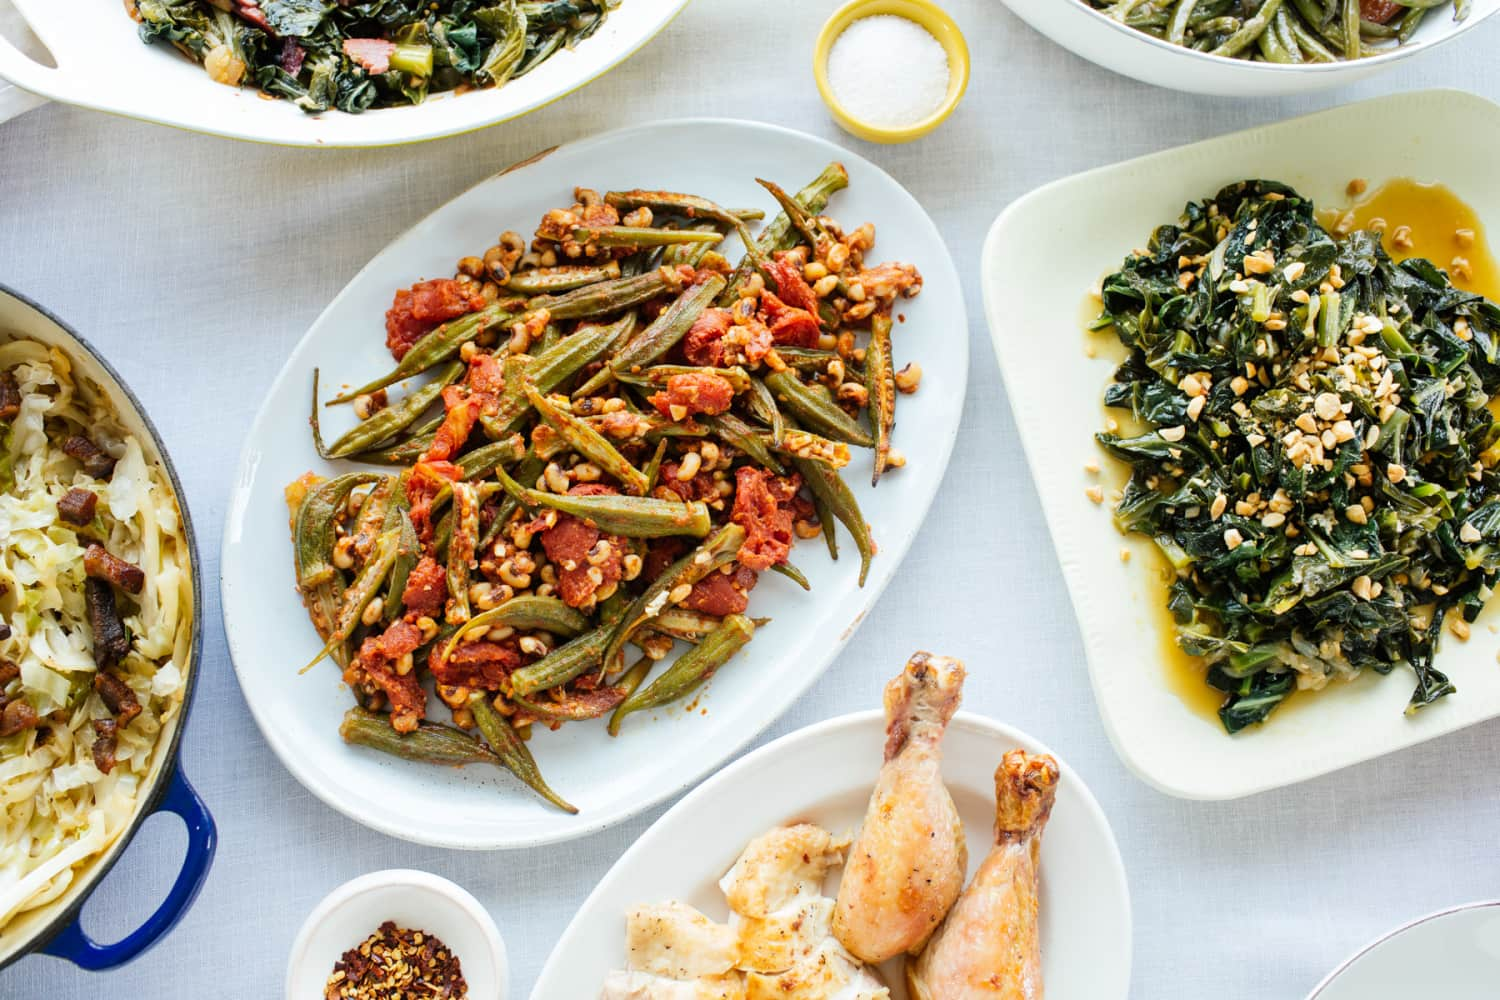 5 Ways the South Turns Vegetables into Healthy Comfort Food